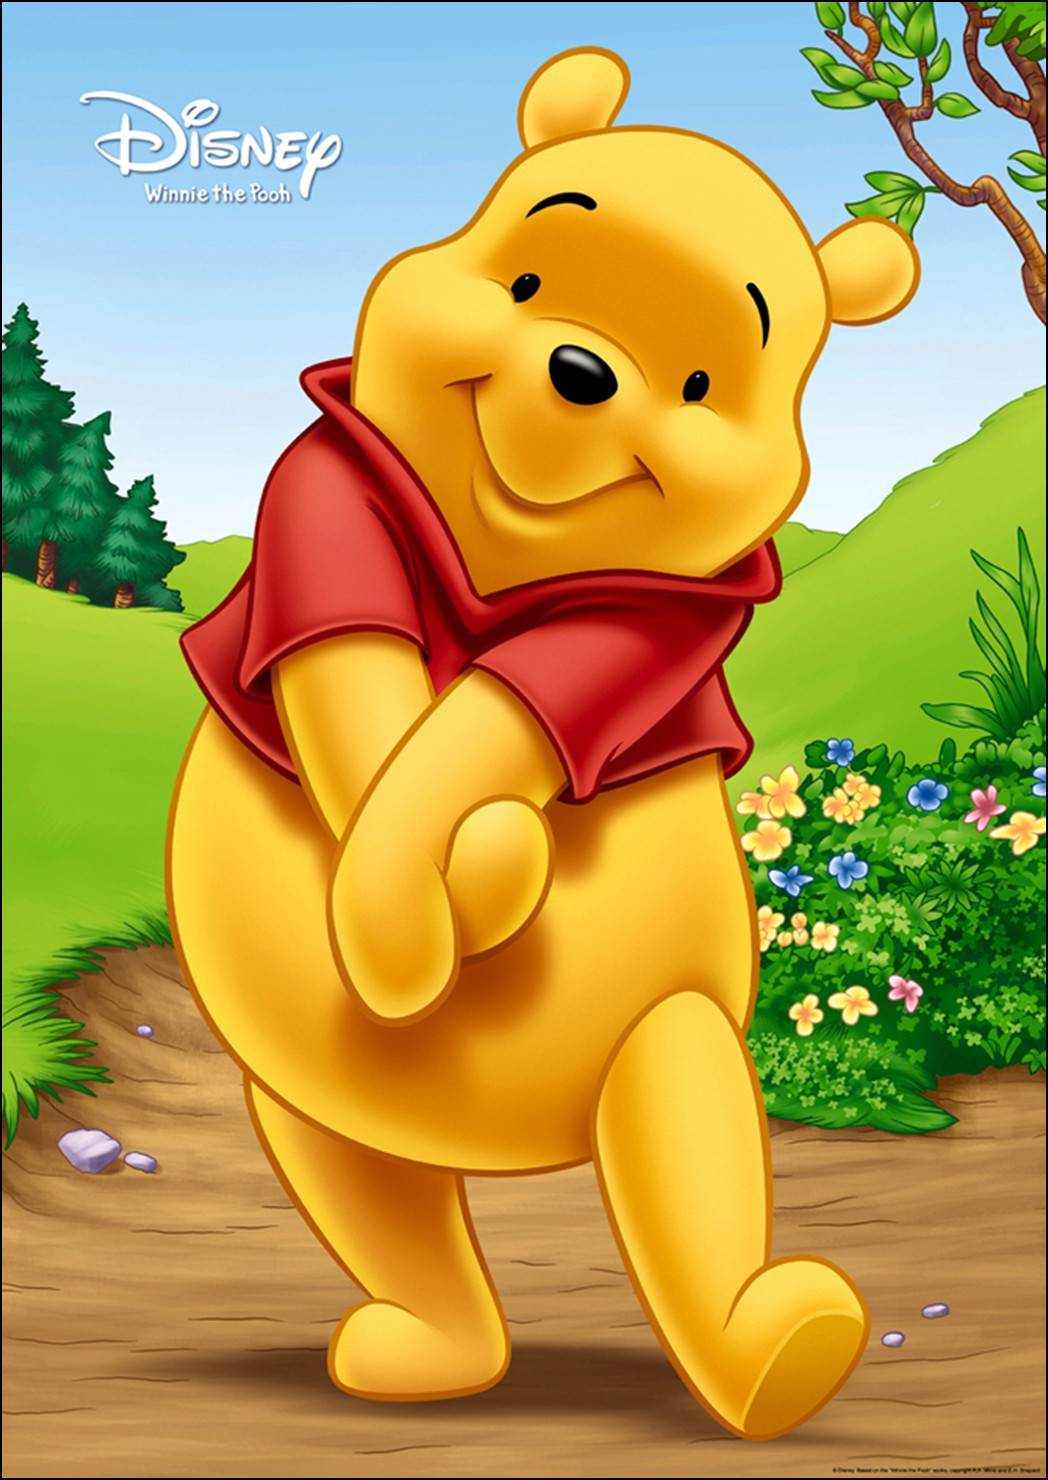 Wallpaper Winnie The Pooh (56 Wallpapers) - Adorable ...